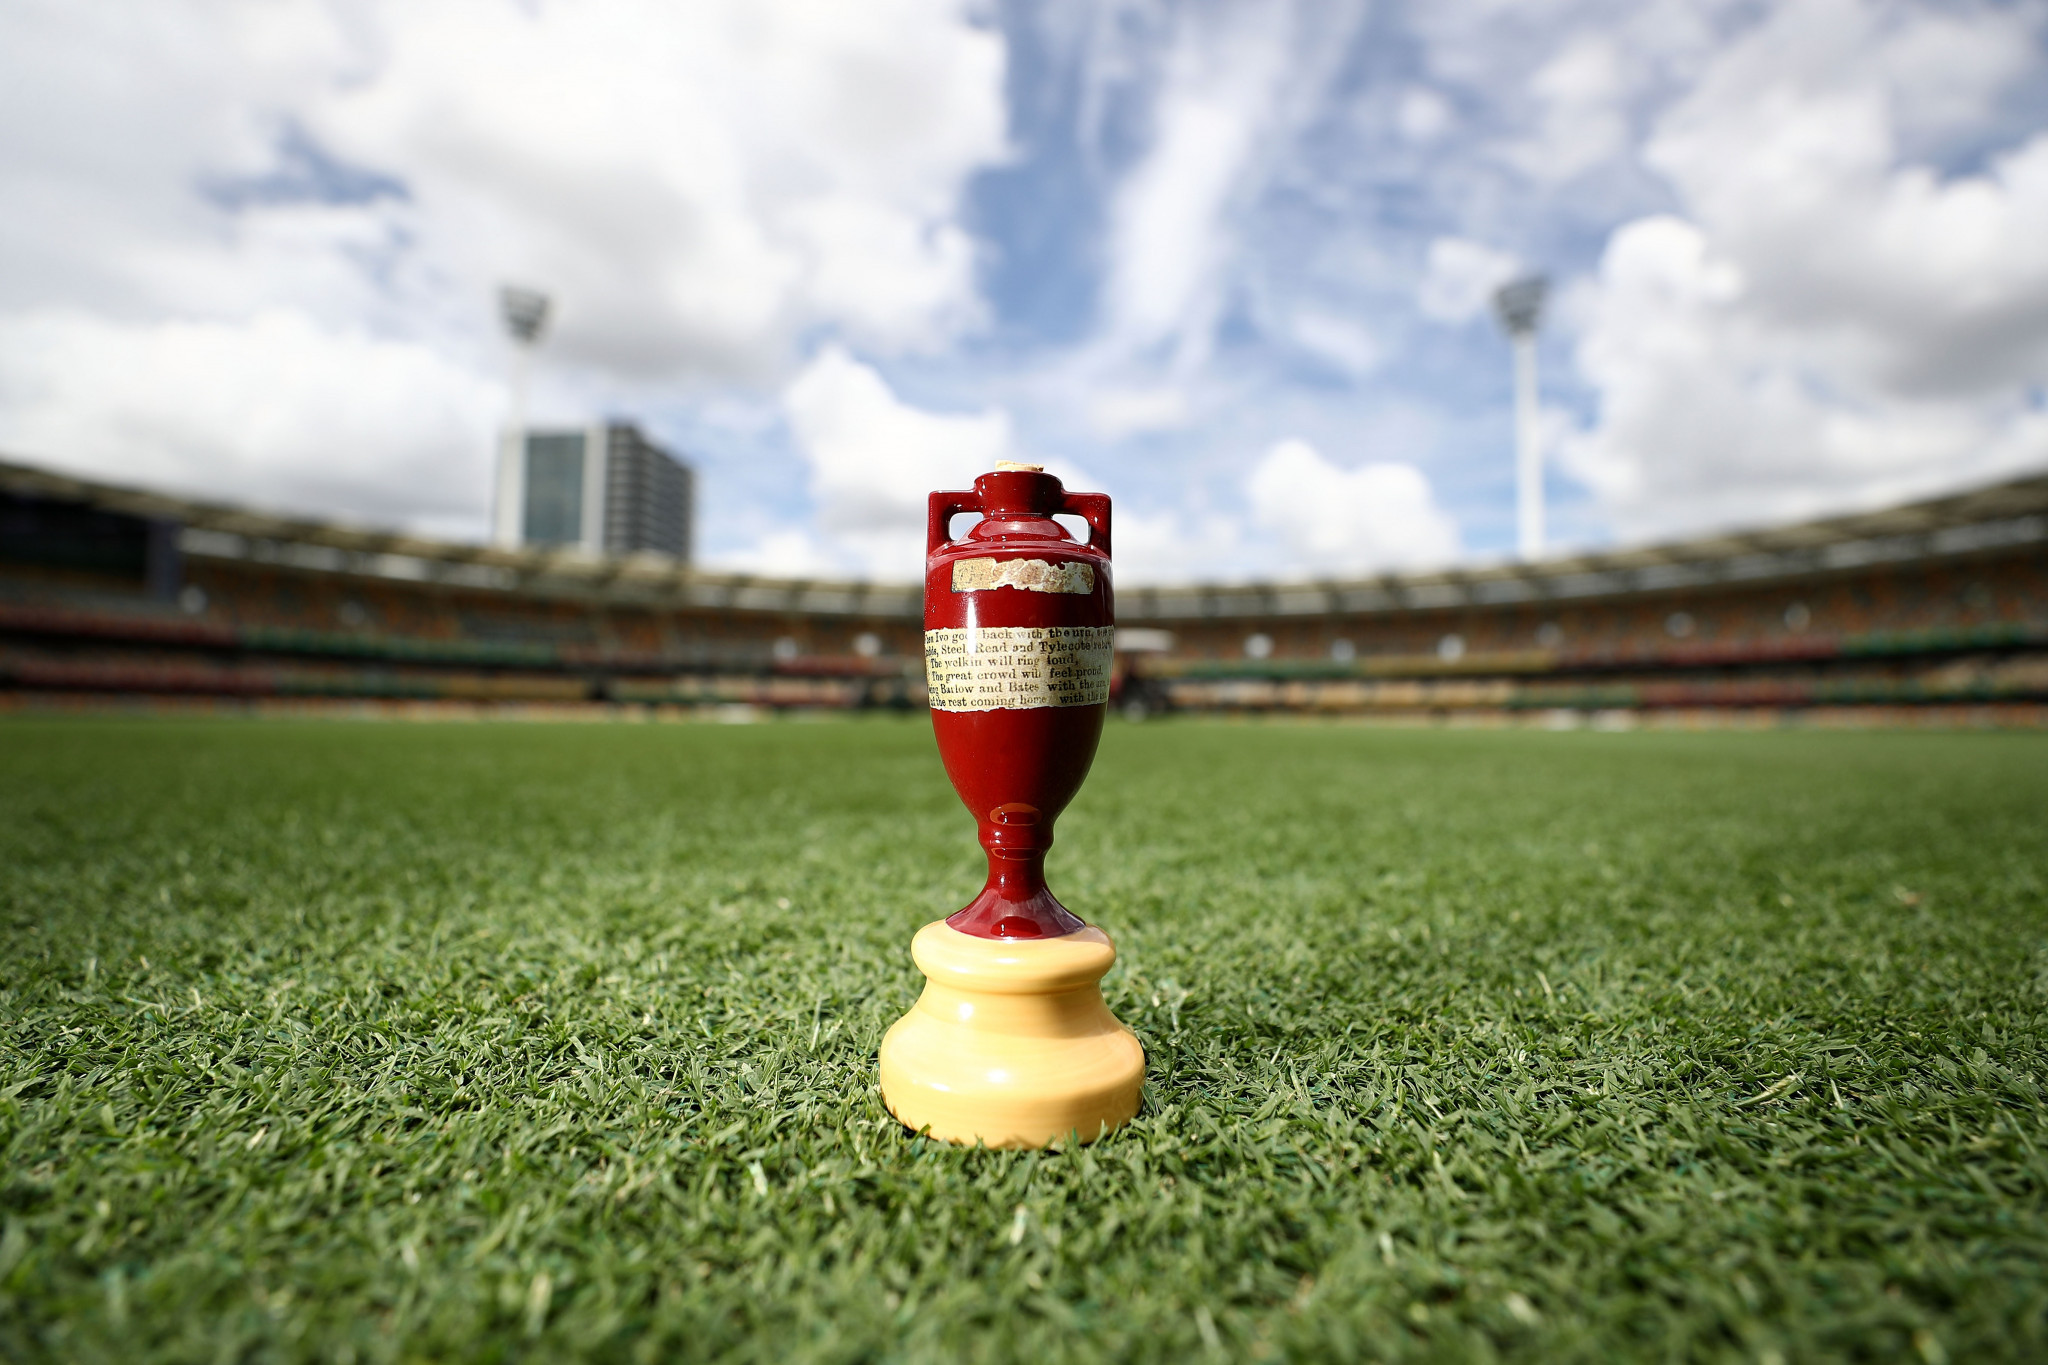 Ashes under renewed threat as Australian Prime Minister rules out COVID-19 exemptions for players' families